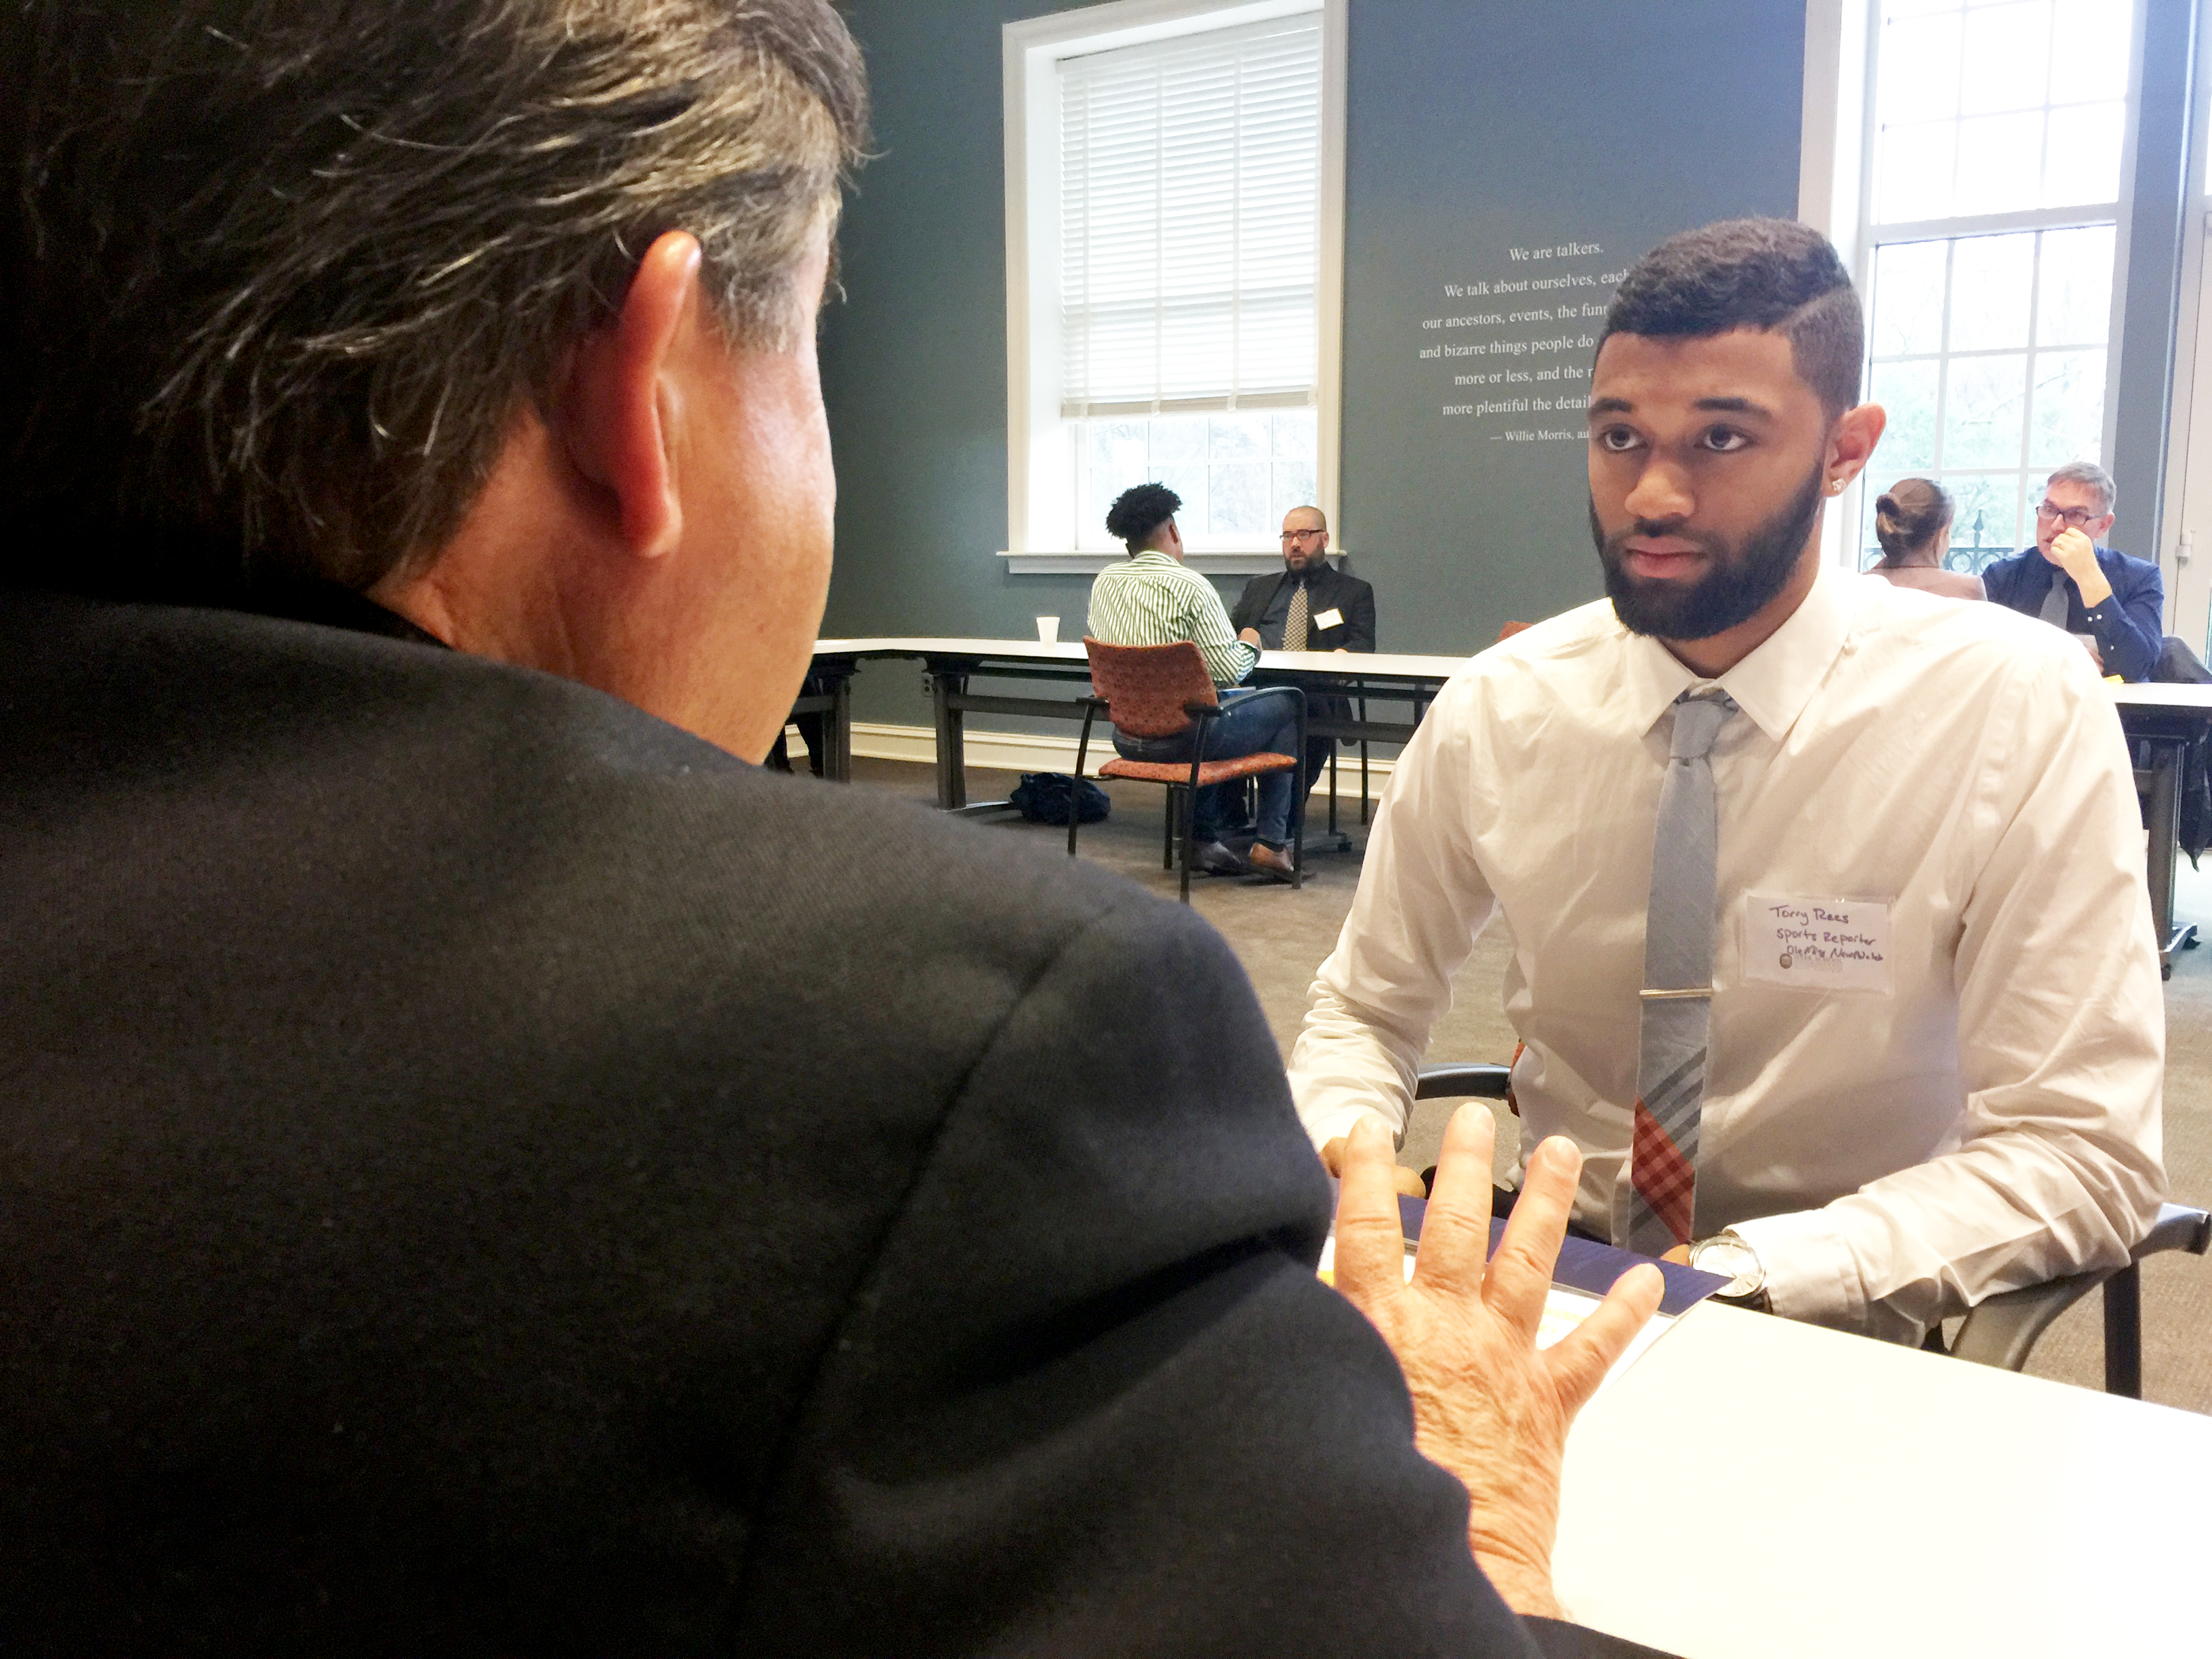 University of Mississippi student Torry Rees speaks with radio broadcaster Jeff Covington during a past MAB event.